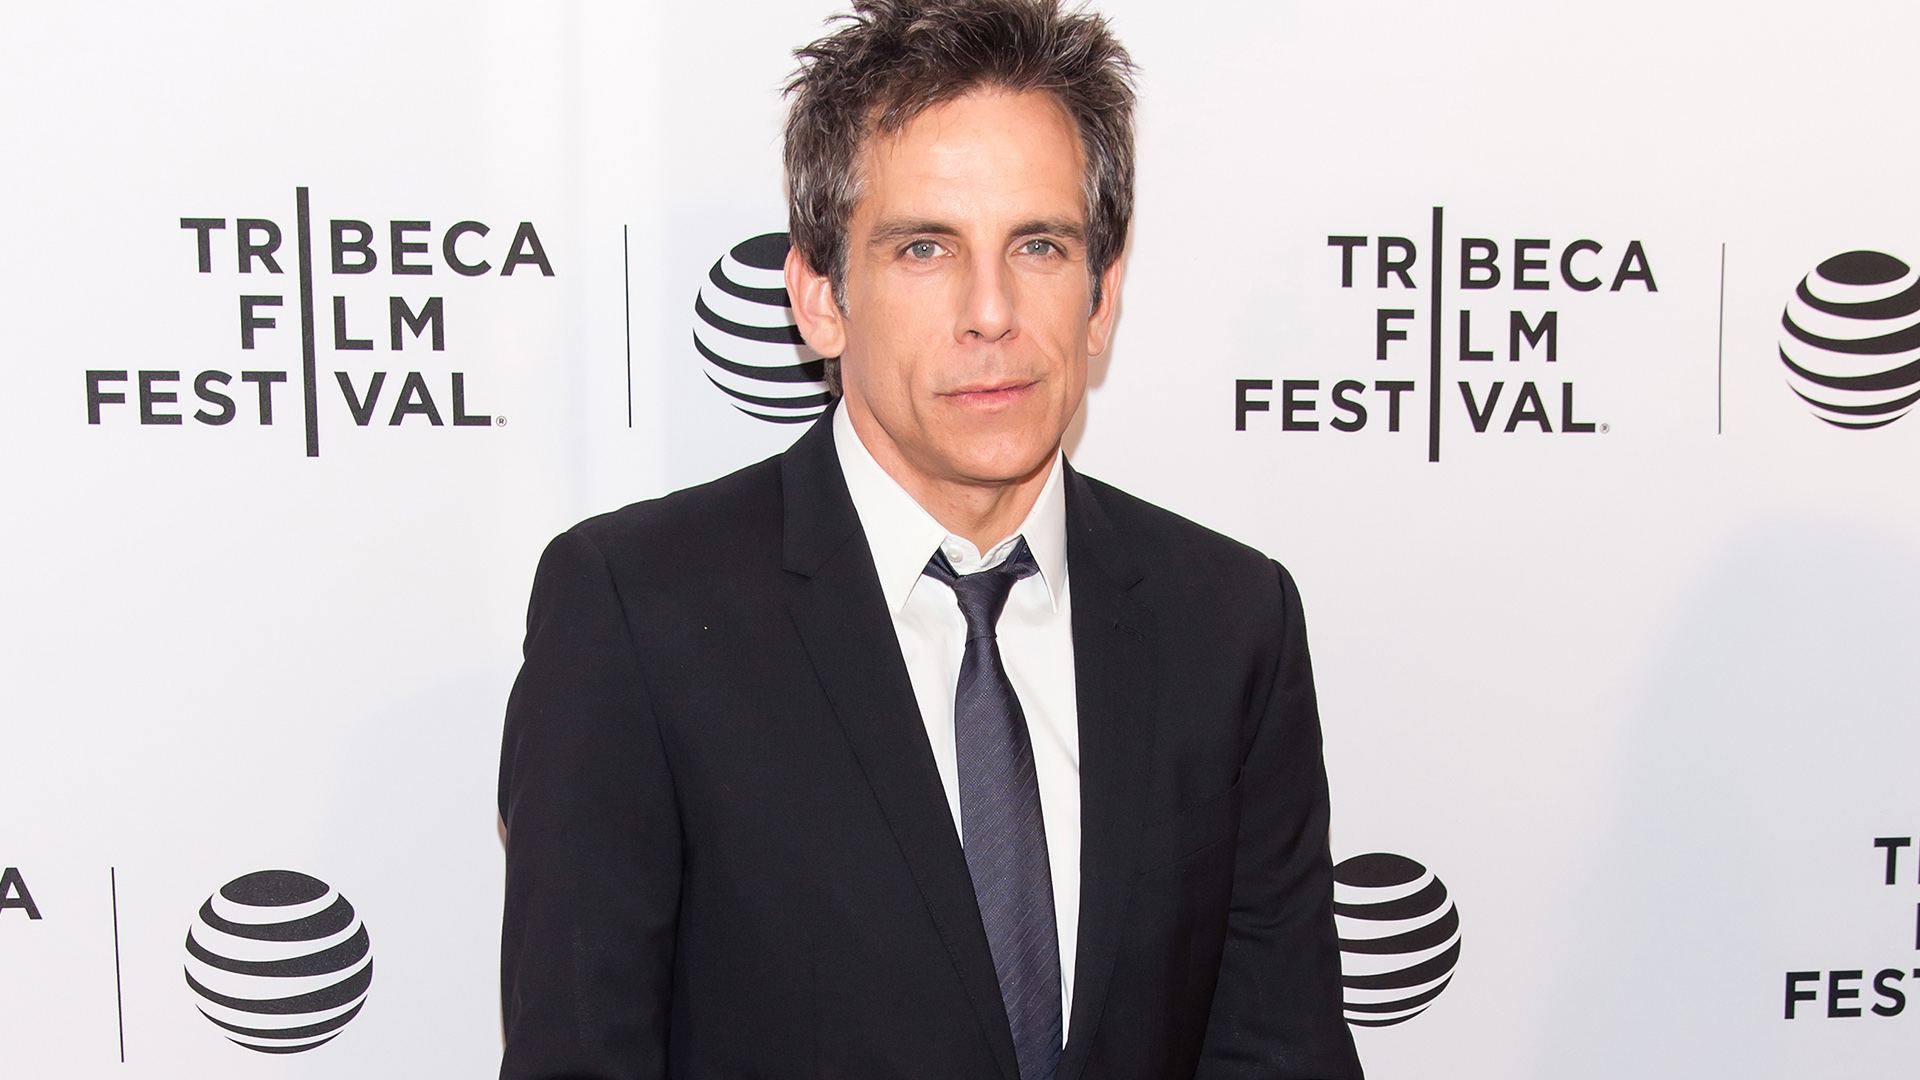 Ben Stiller Reveals He Was Diagnosed with Prostate Cancer 2 Years Ago